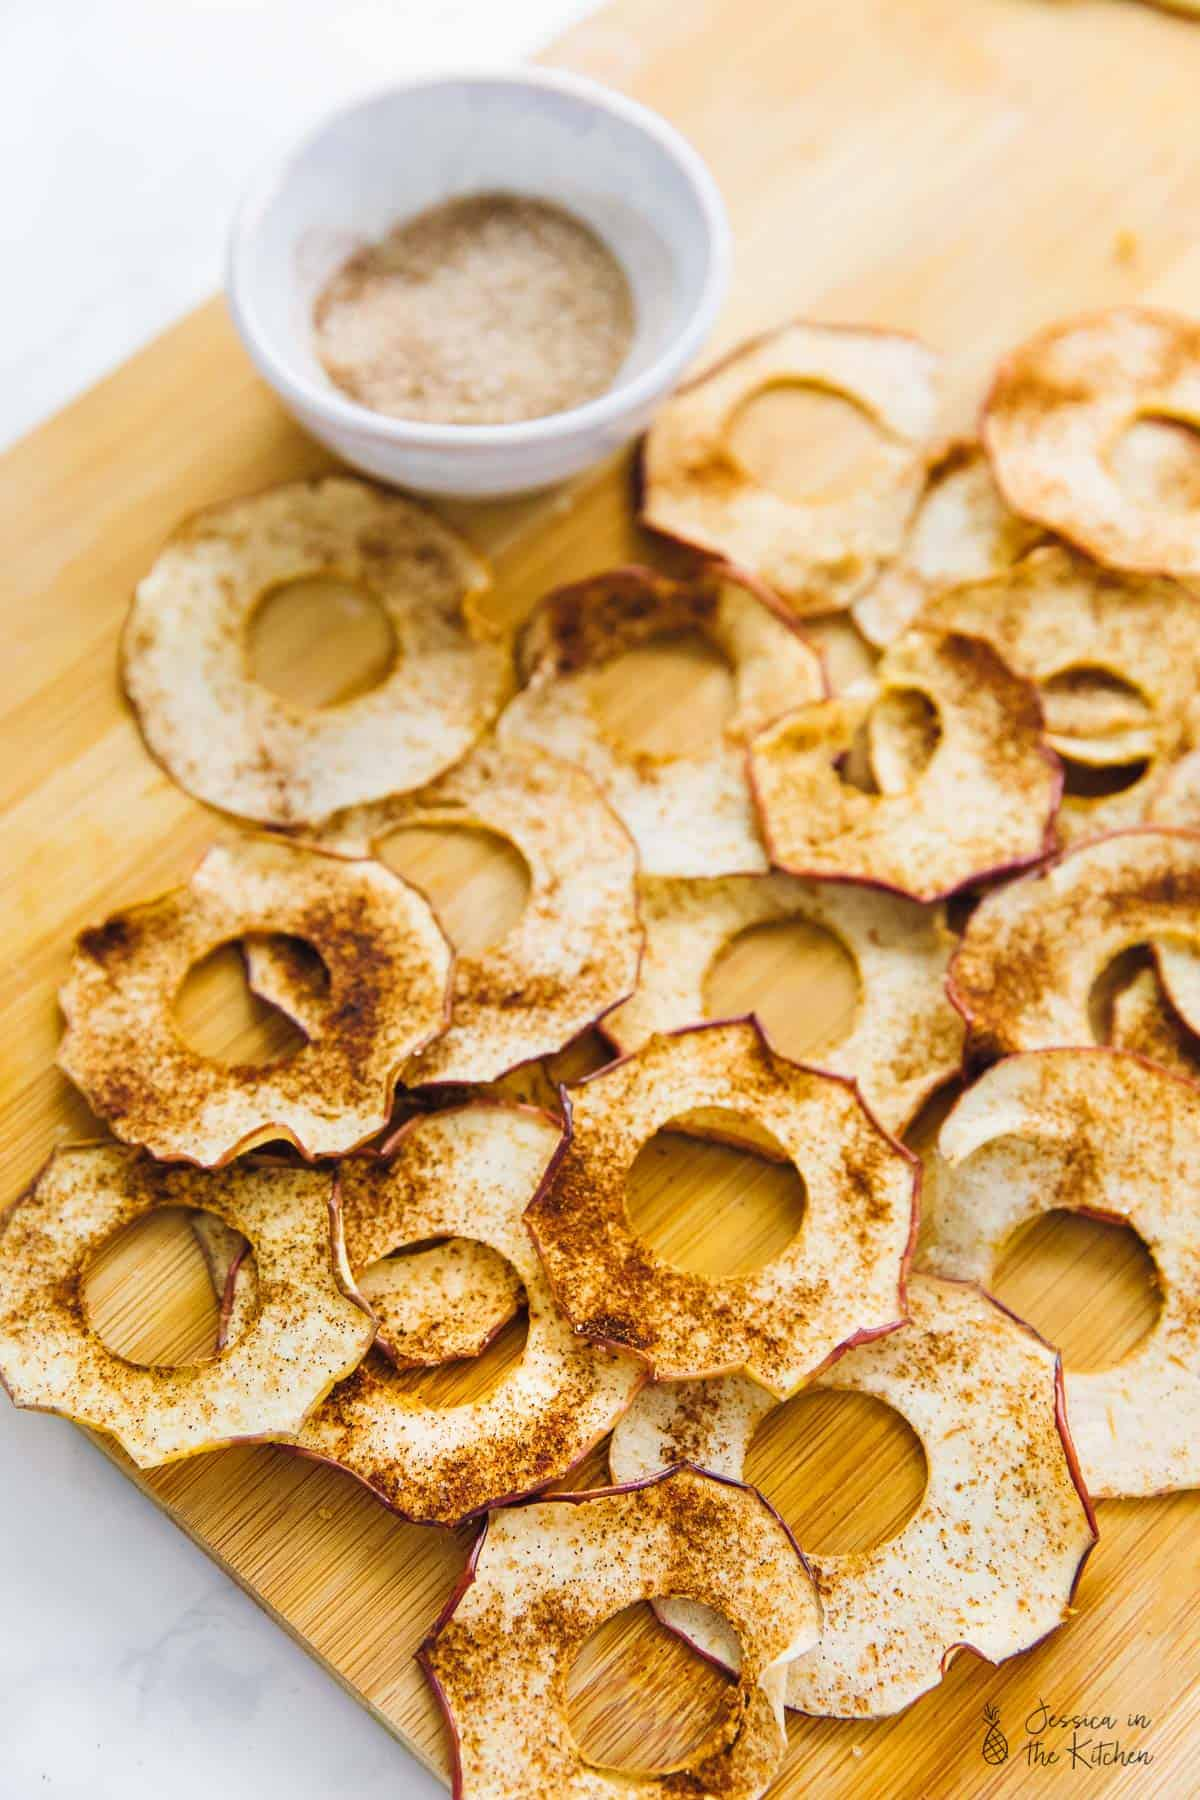 Overhead view of cinnamon apple chips on a wooden chopping board.